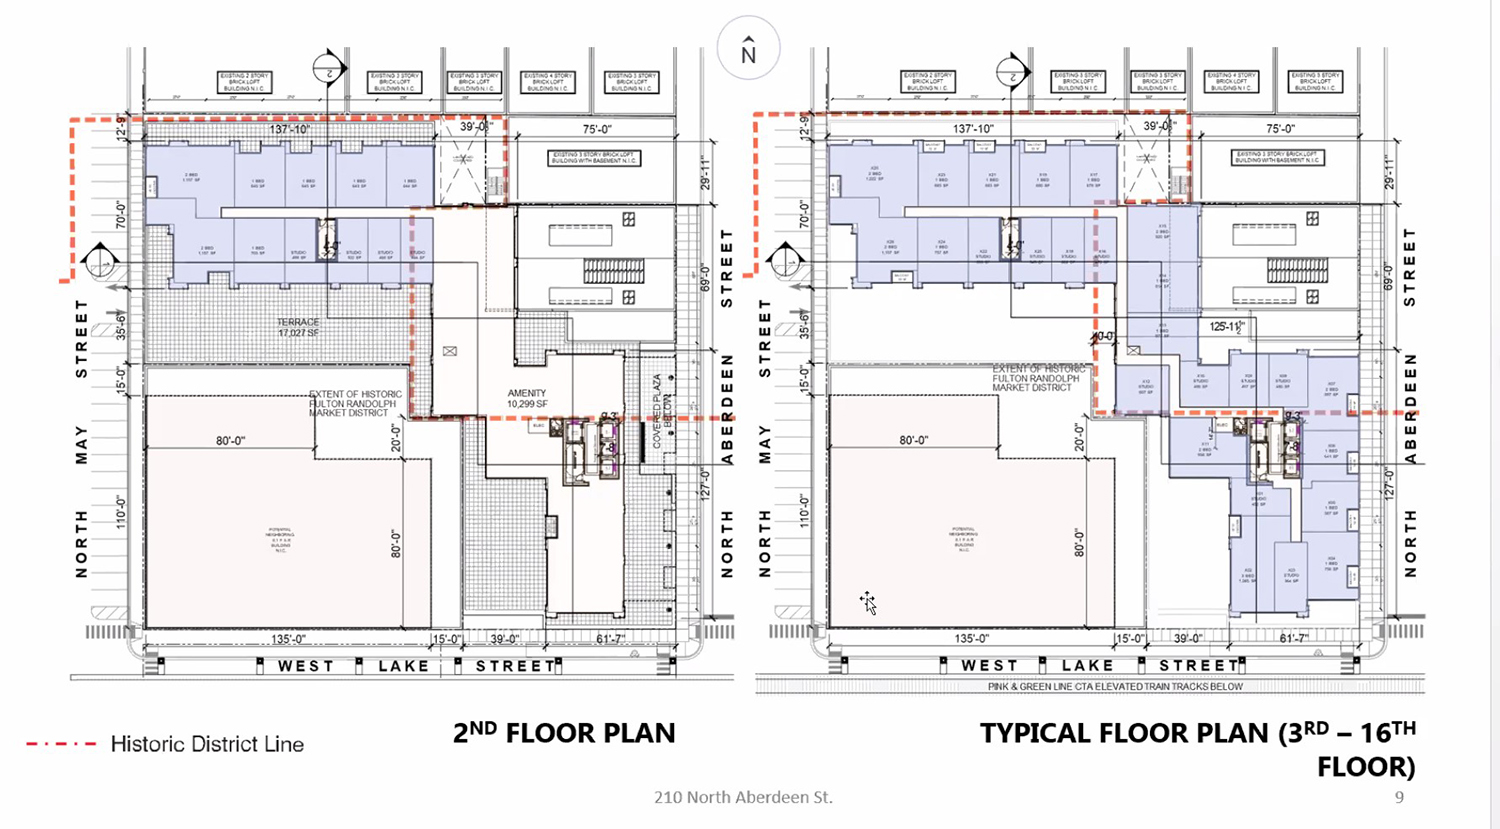 Floor Plans for 210 N Aberdeen Street. Drawing by NORR